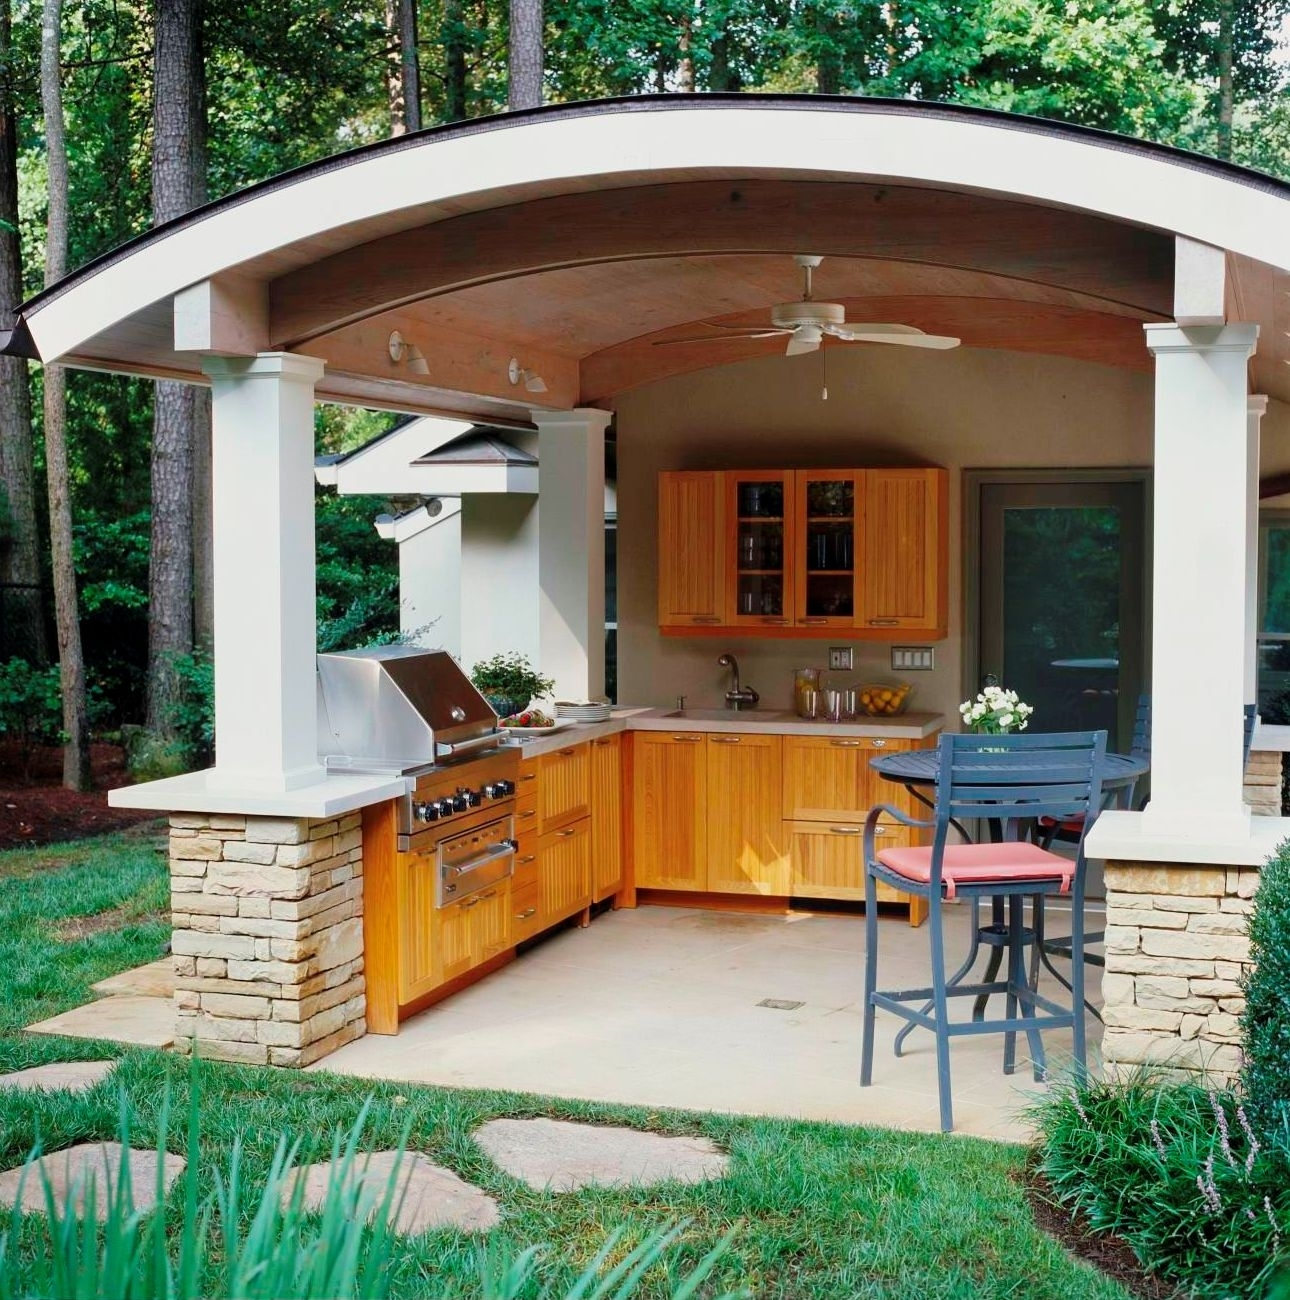 Image of: Kitchen Covered Modern Outdoor Kitchens With Woden Kitchen Set Inside Outdoor Kitchen Wood Countertops Nice Outdoor Kitchen Wood Countertops Inspiration